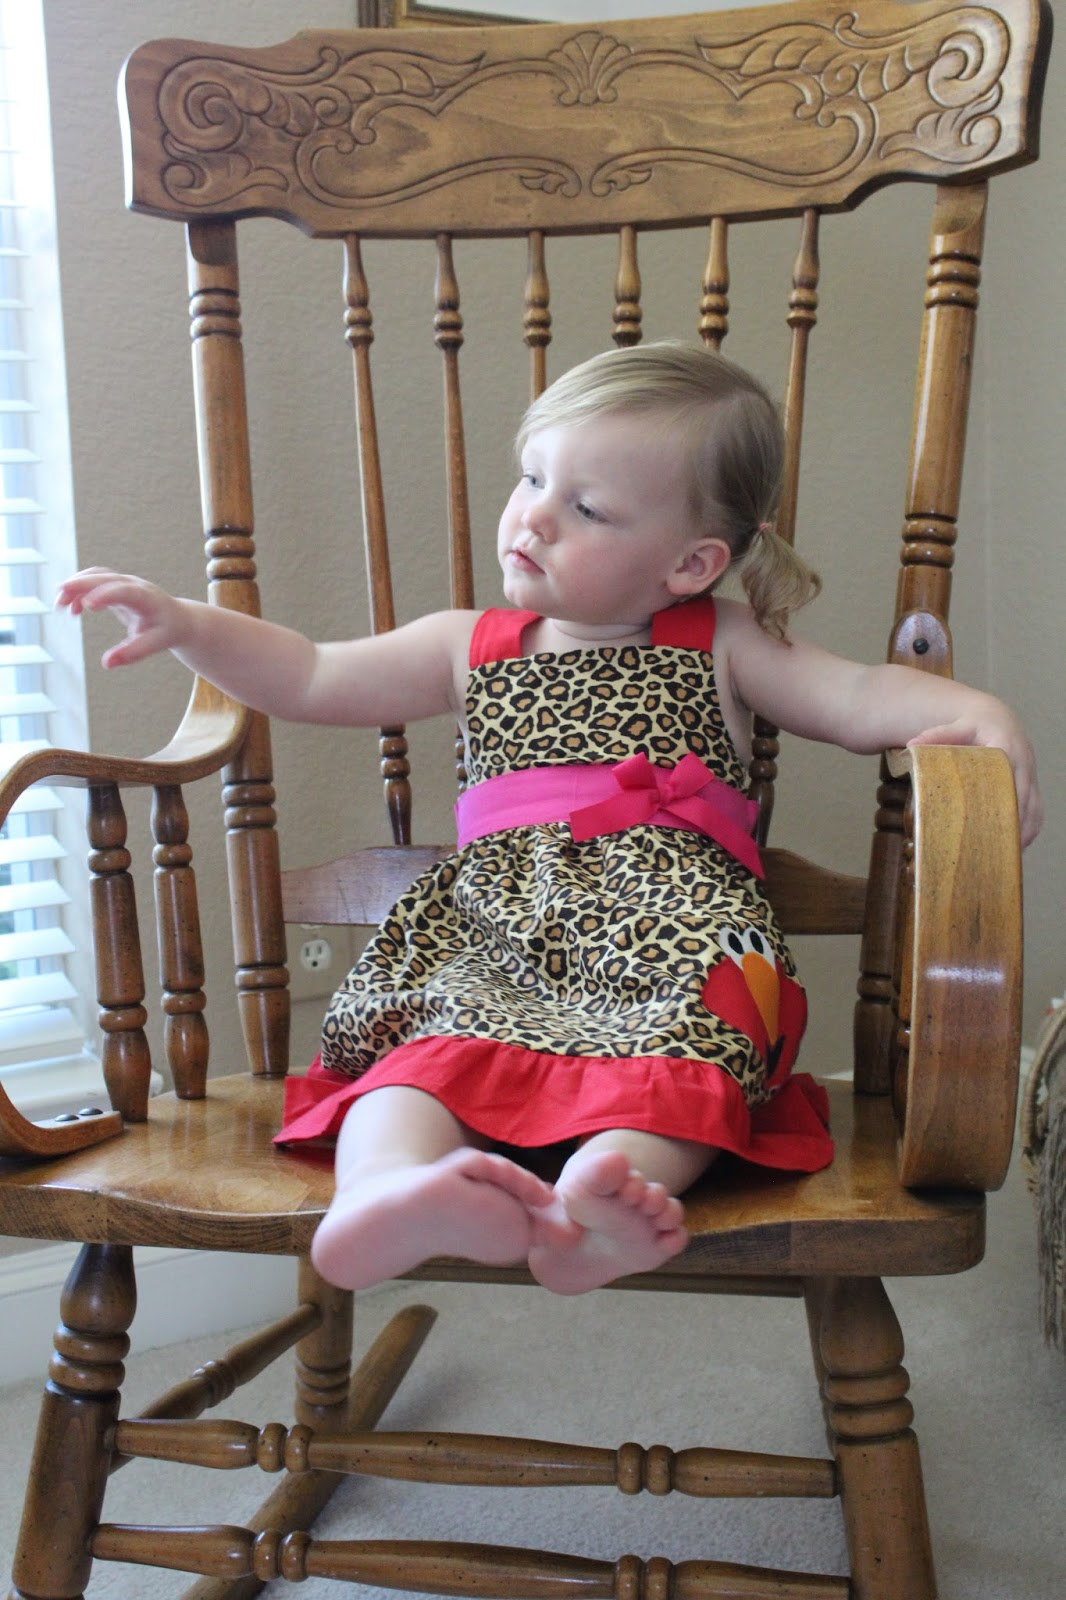 Abby Had A Leopard Elmo Themed Birthday Auntie Found Dress Long Time Ago That Started It All